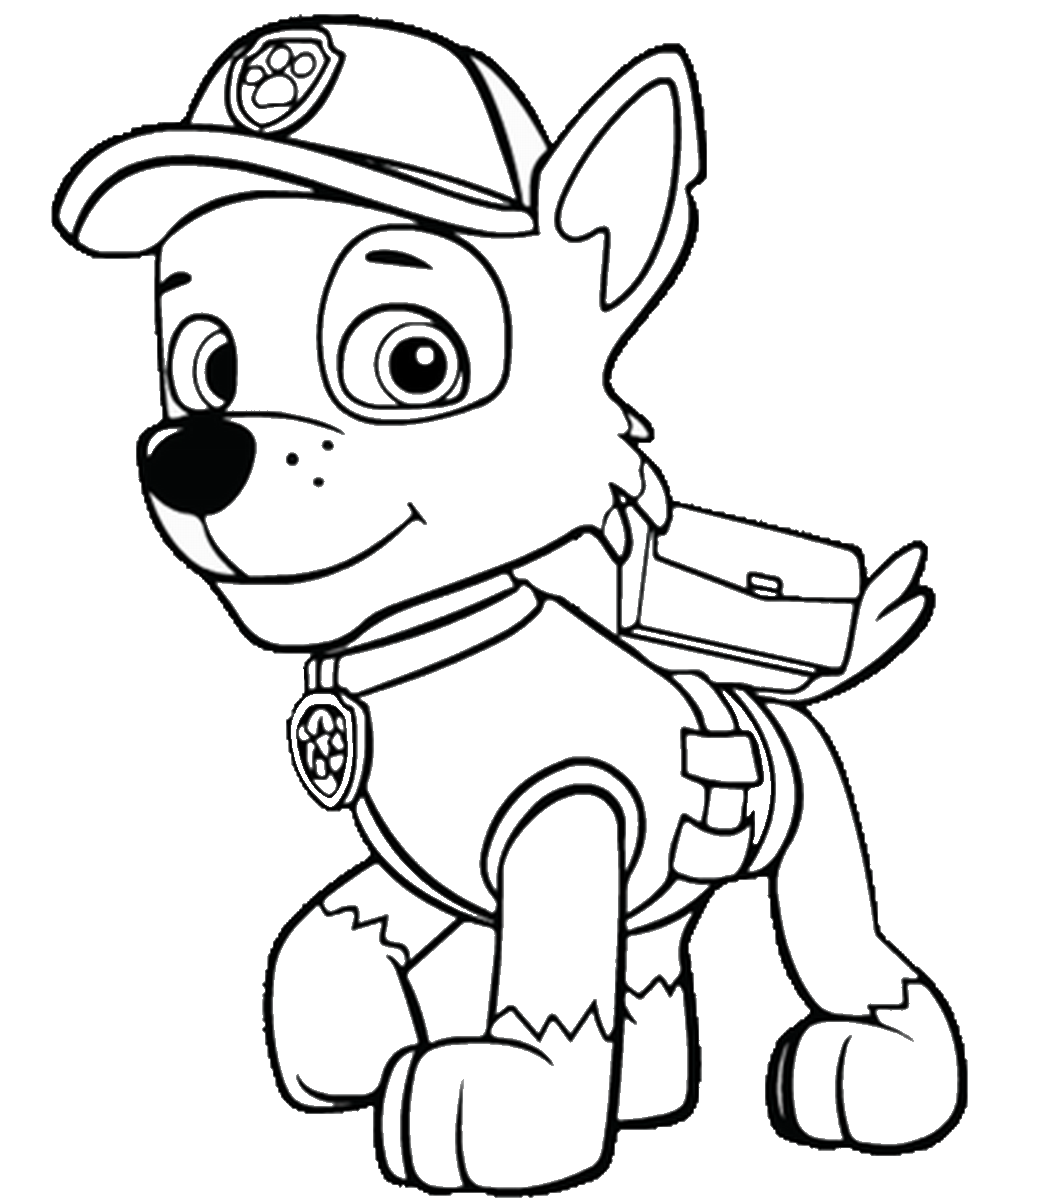 paw patrol coloring 1000 images about baileys party ideas on pinterest paw paw patrol coloring